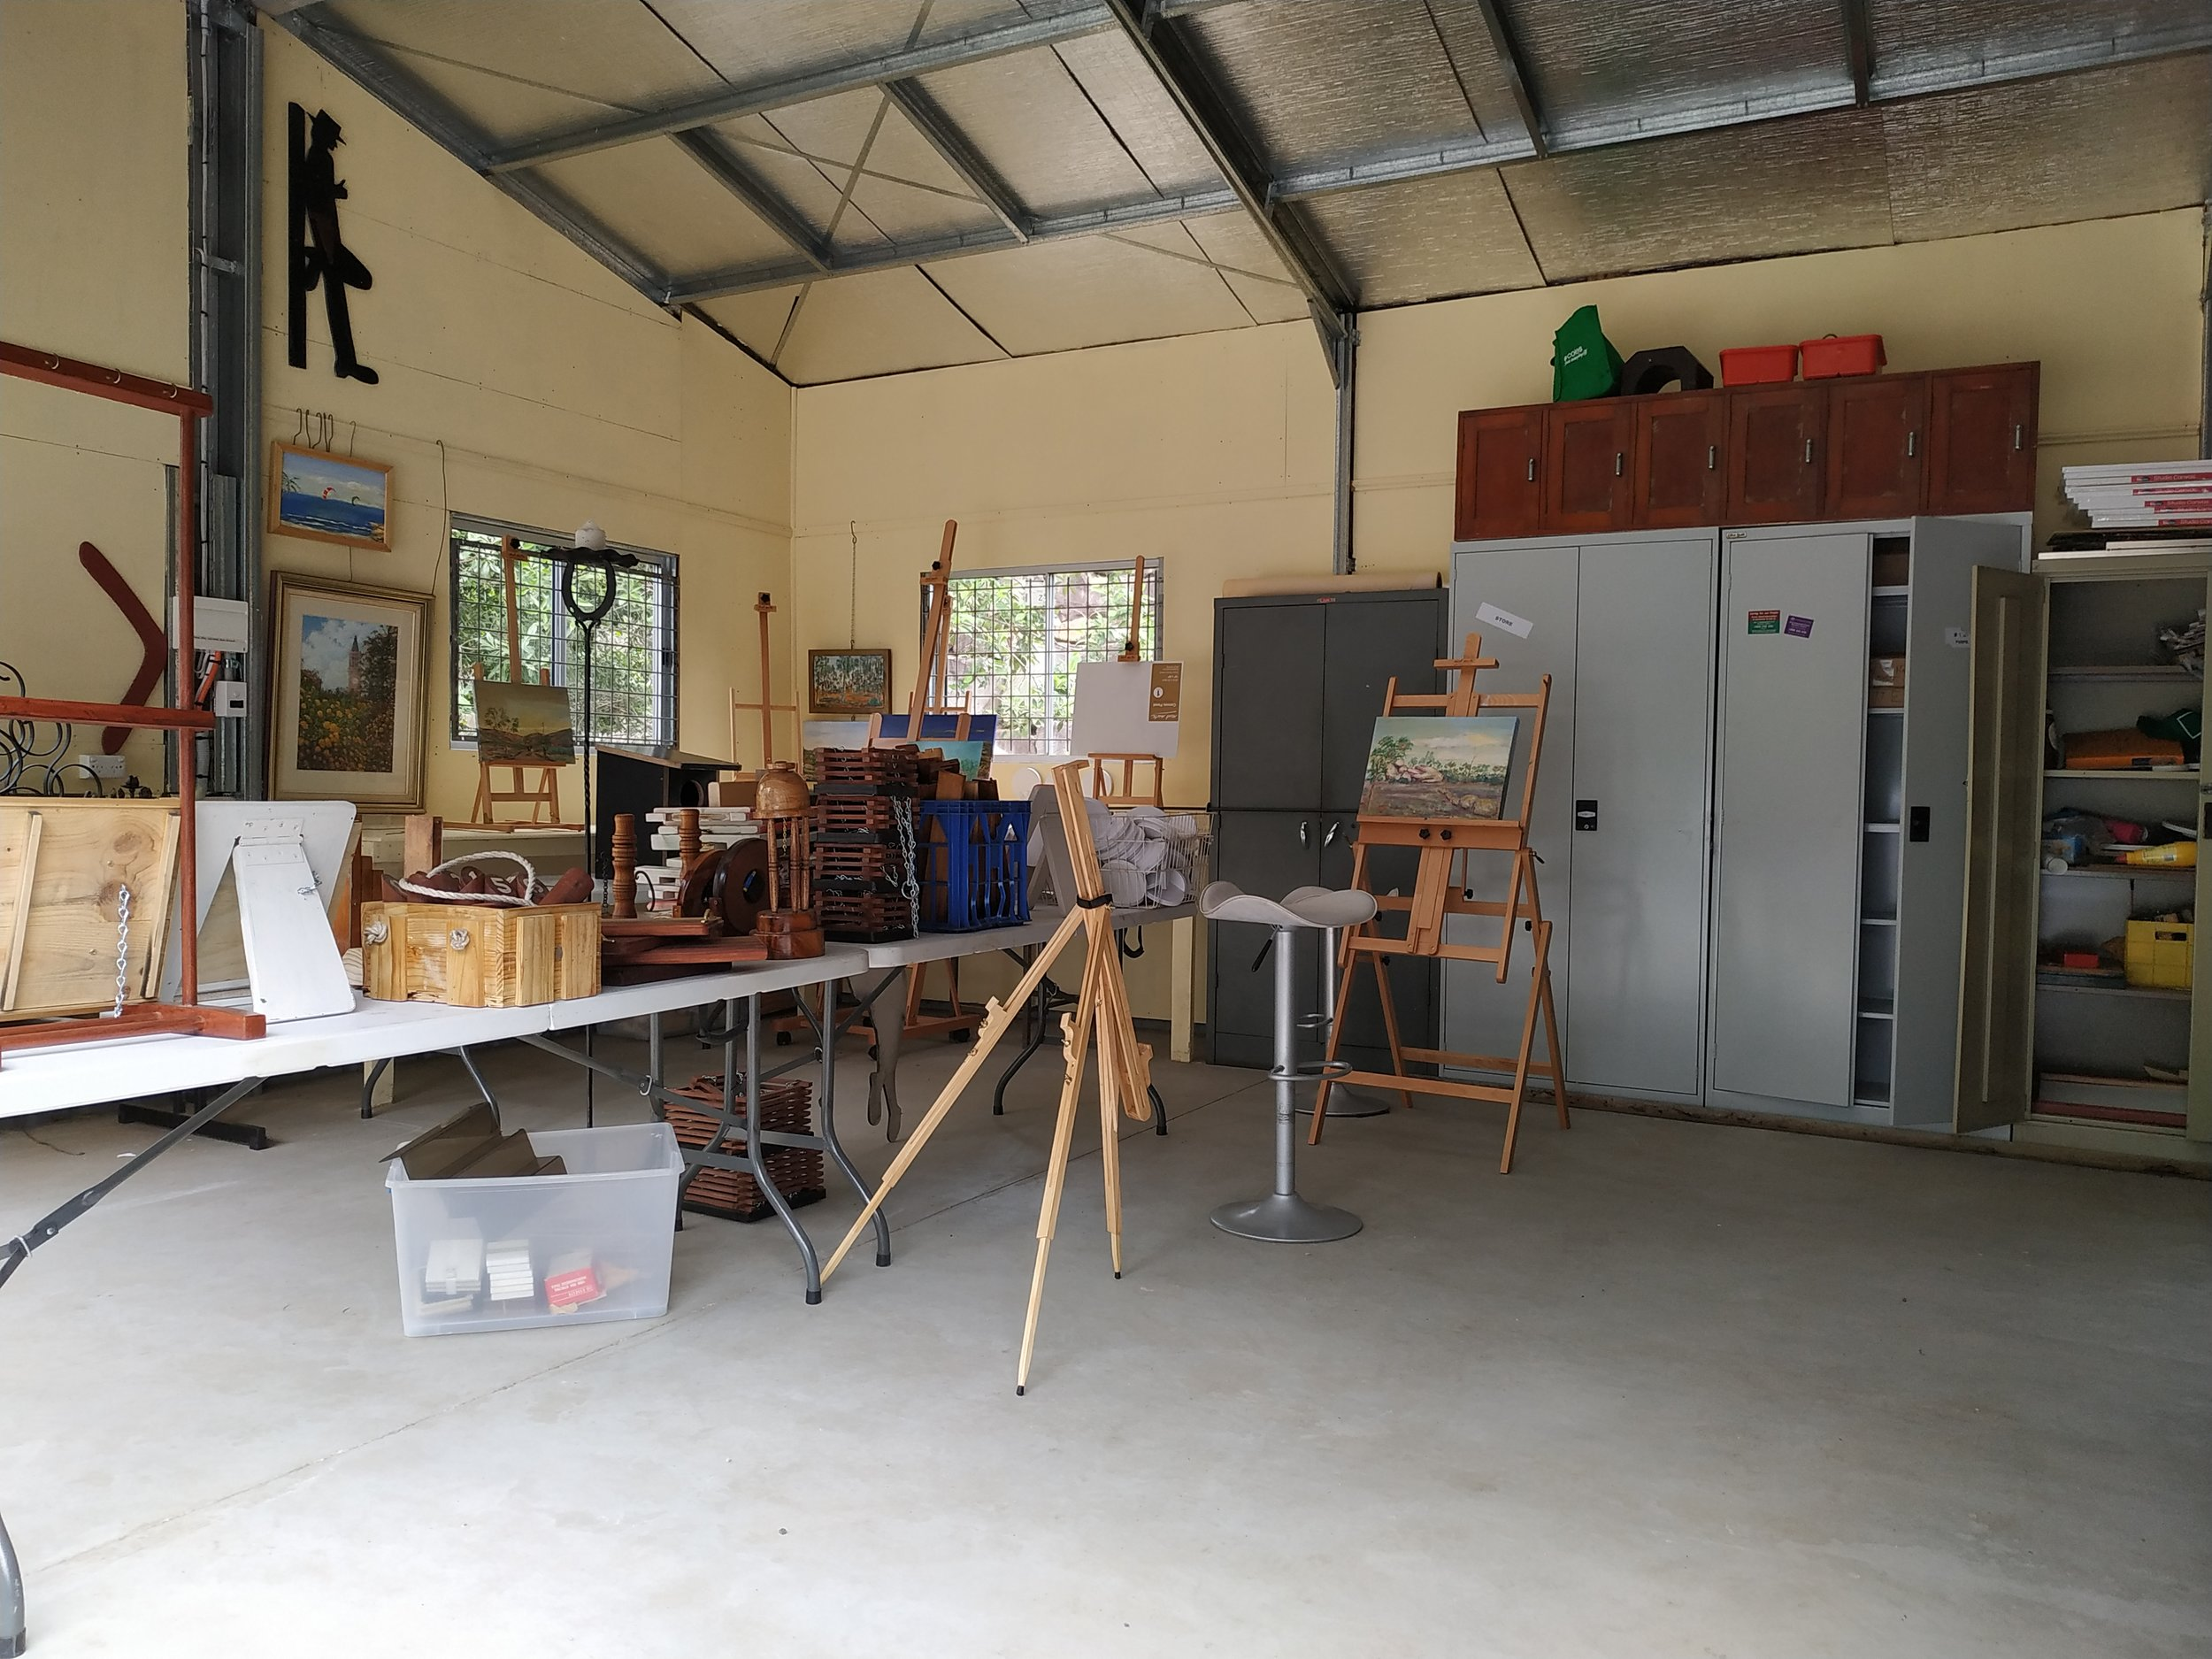 ARTS SHED